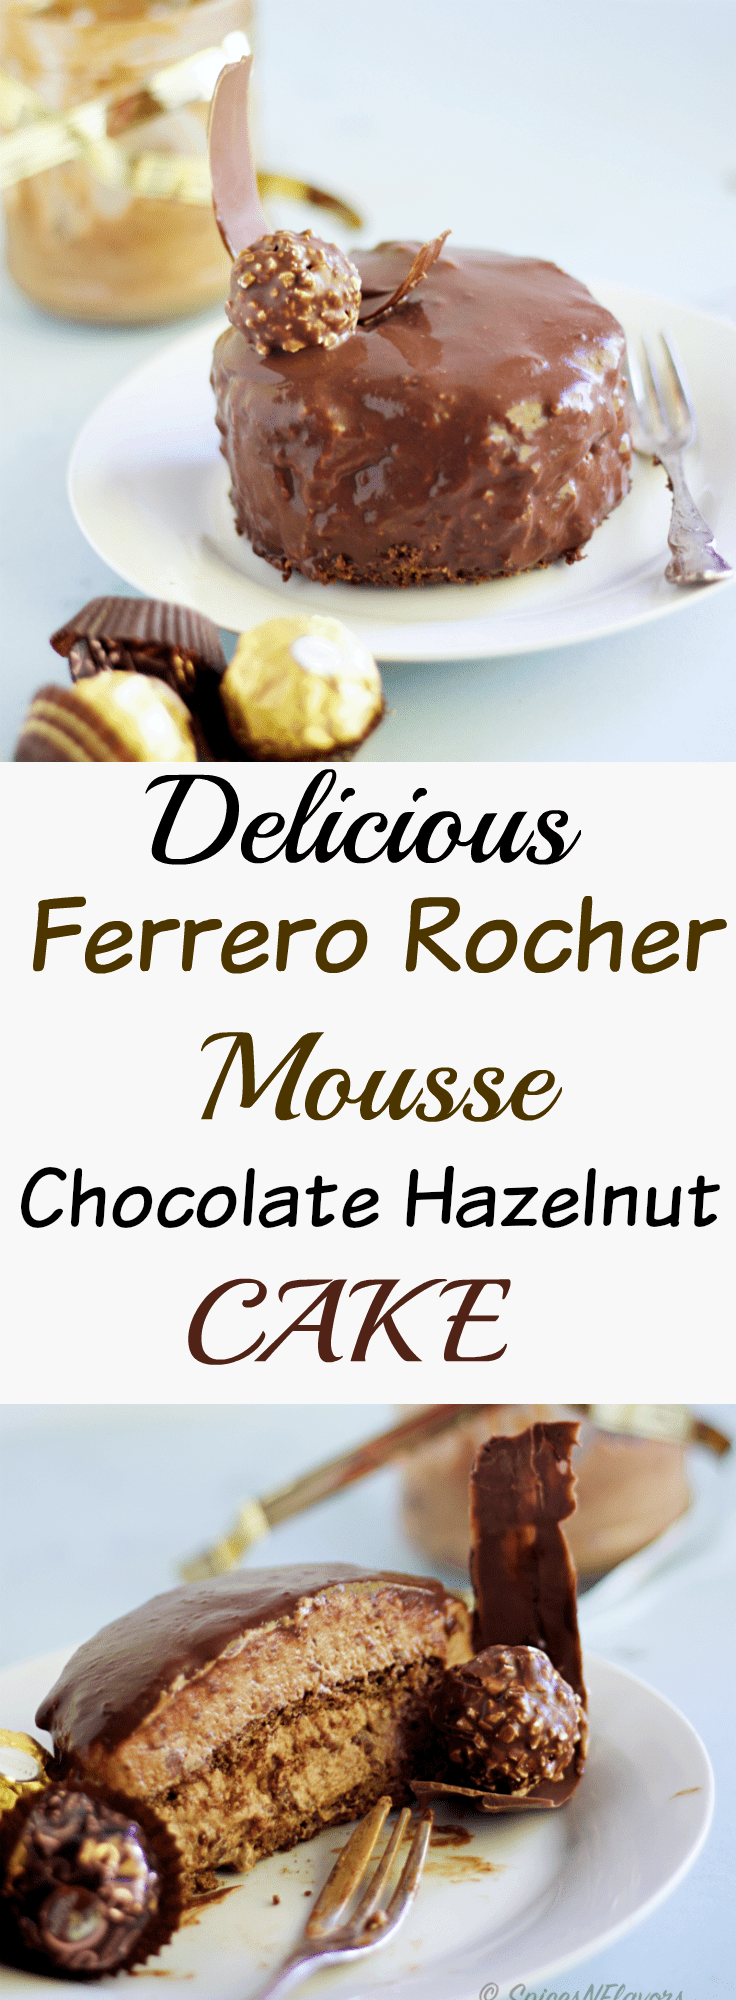 pin image of ferrero rocher mousse cake